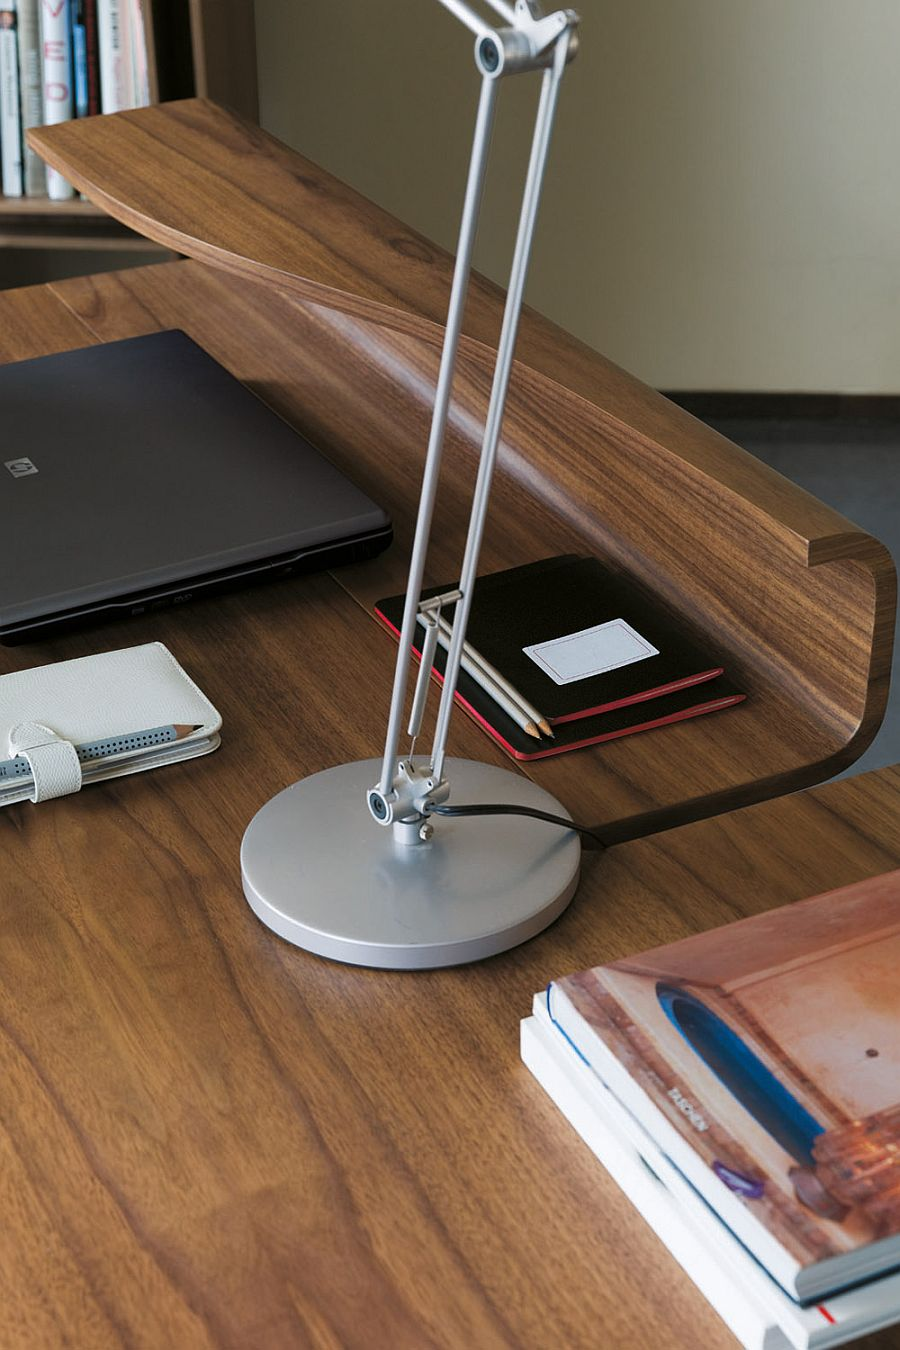 Exqusite design of office desk in walnut keeps things classic and simple